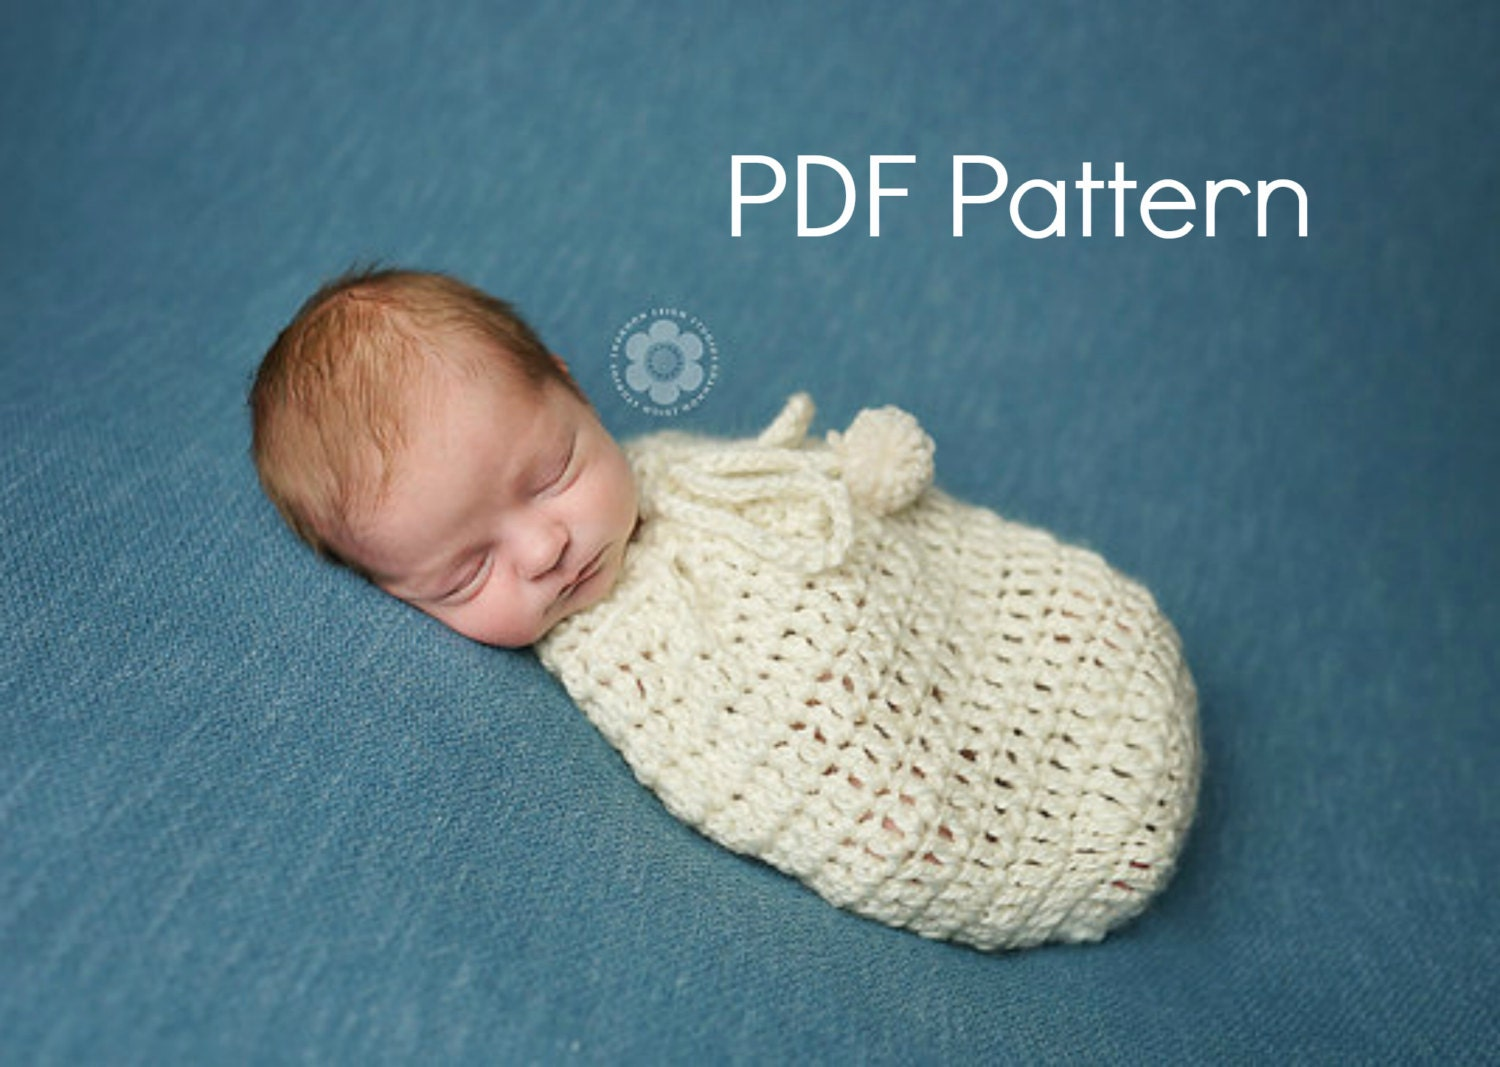 Crochet Pattern For Swaddle Blanket : PDF Crochet Pattern Newborn Swaddle Sack